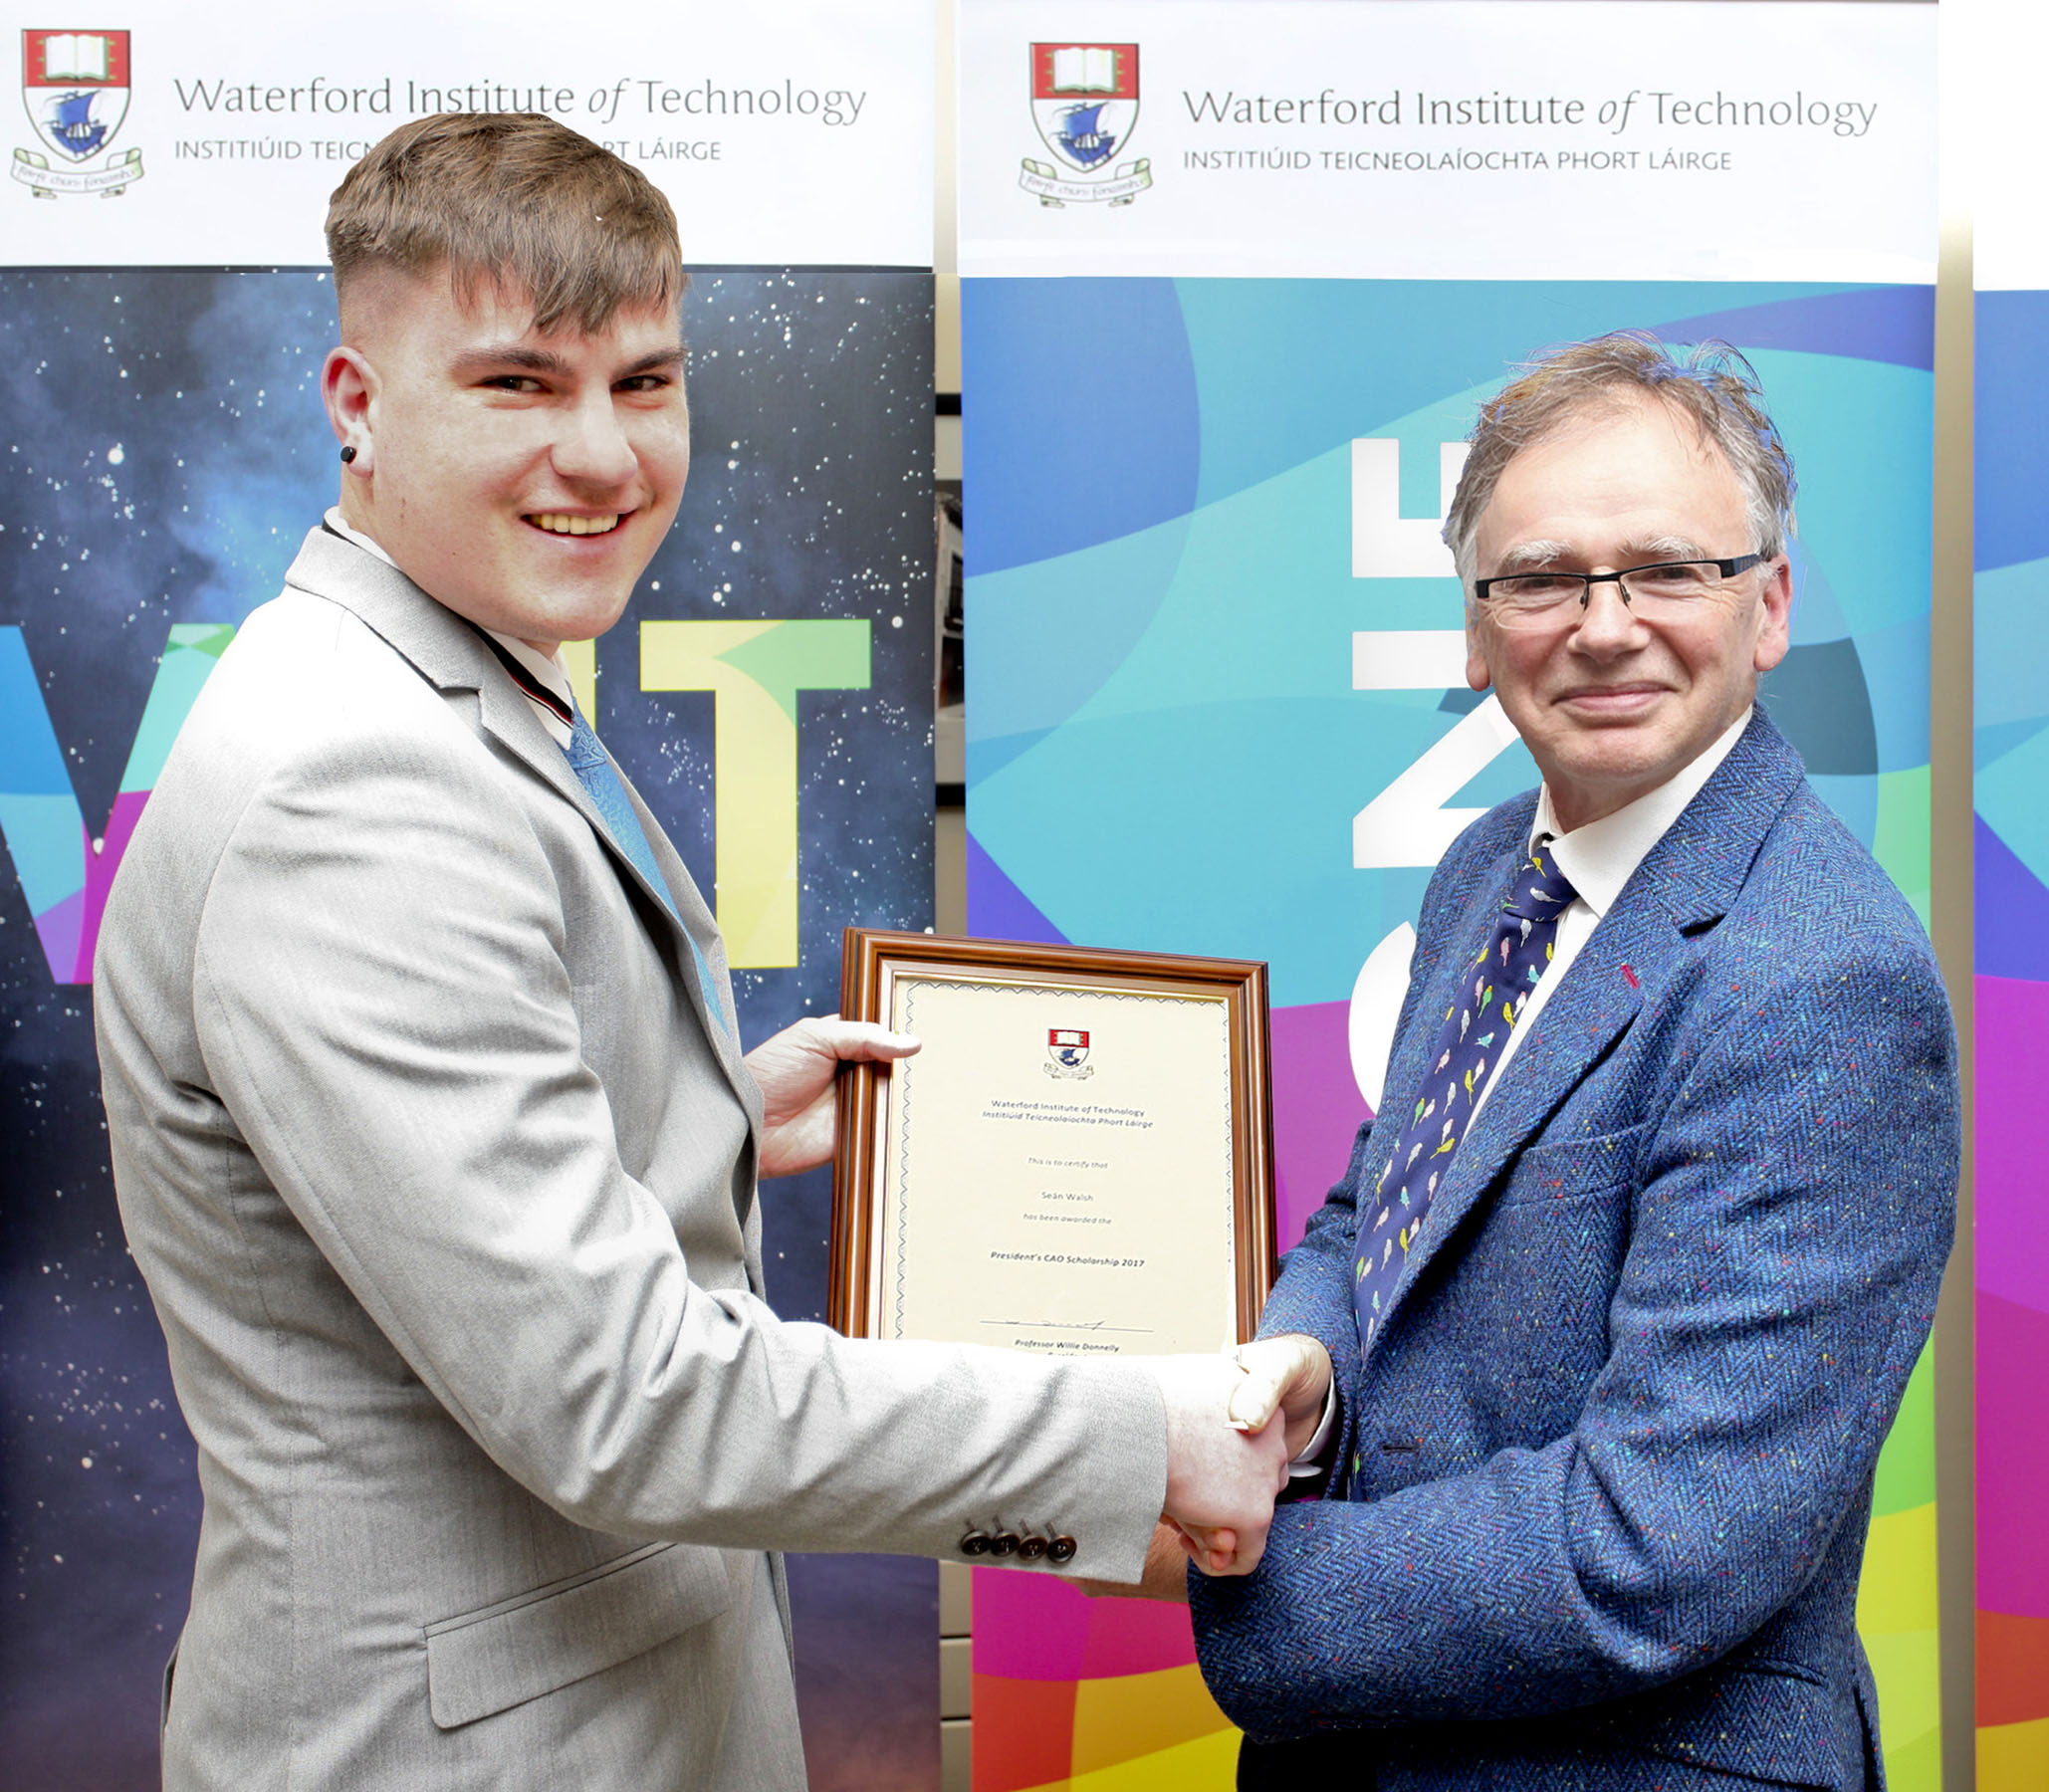 Bachelor of Business Studies (Hons) student Seán Walsh is one of five President's Scholarship recipients for 2017